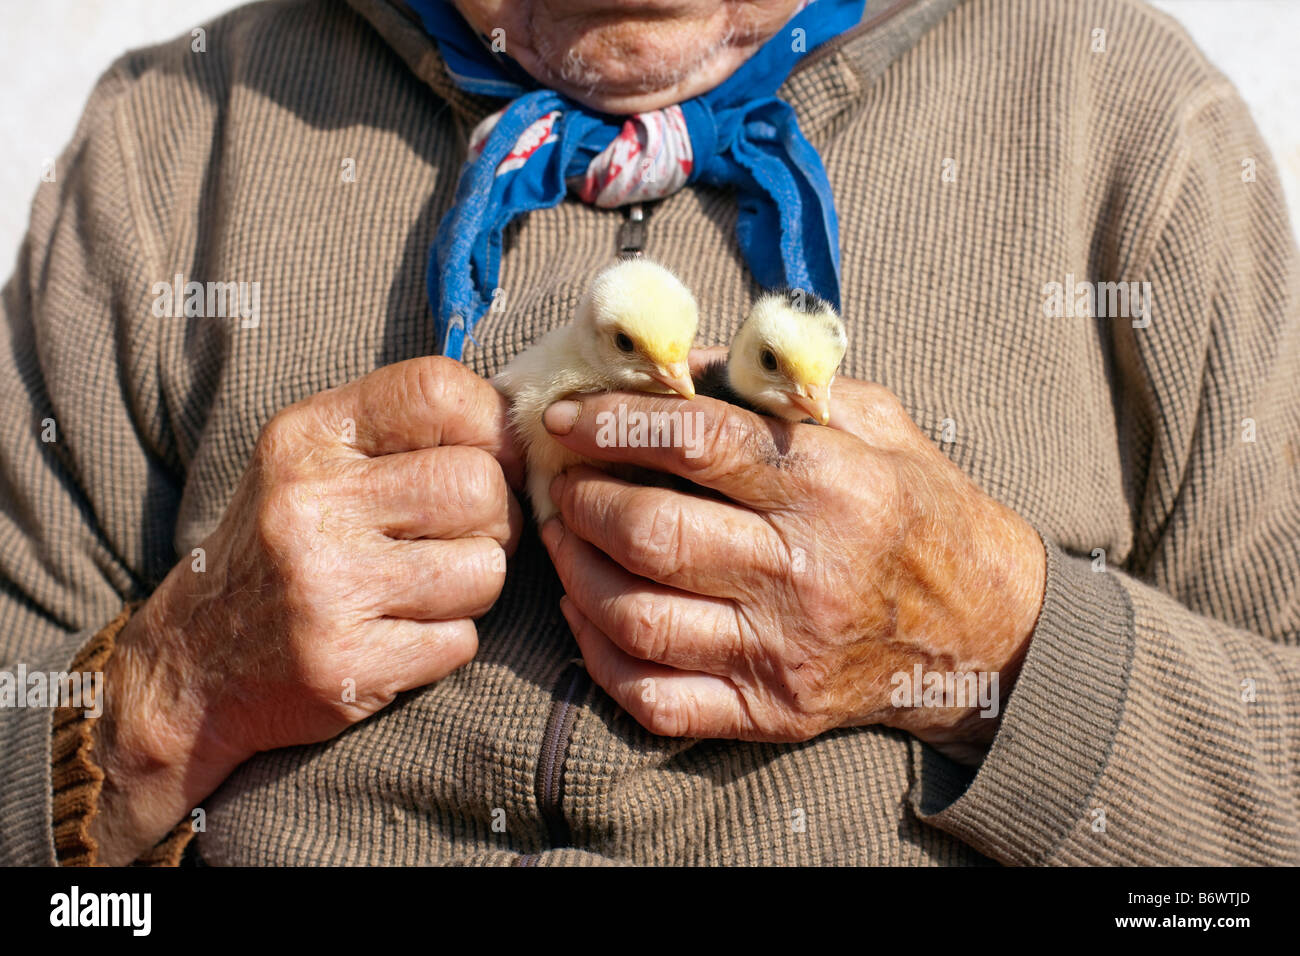 PEASANT WOMAN HOLDING POULTS IN HER HANDS - Stock Image